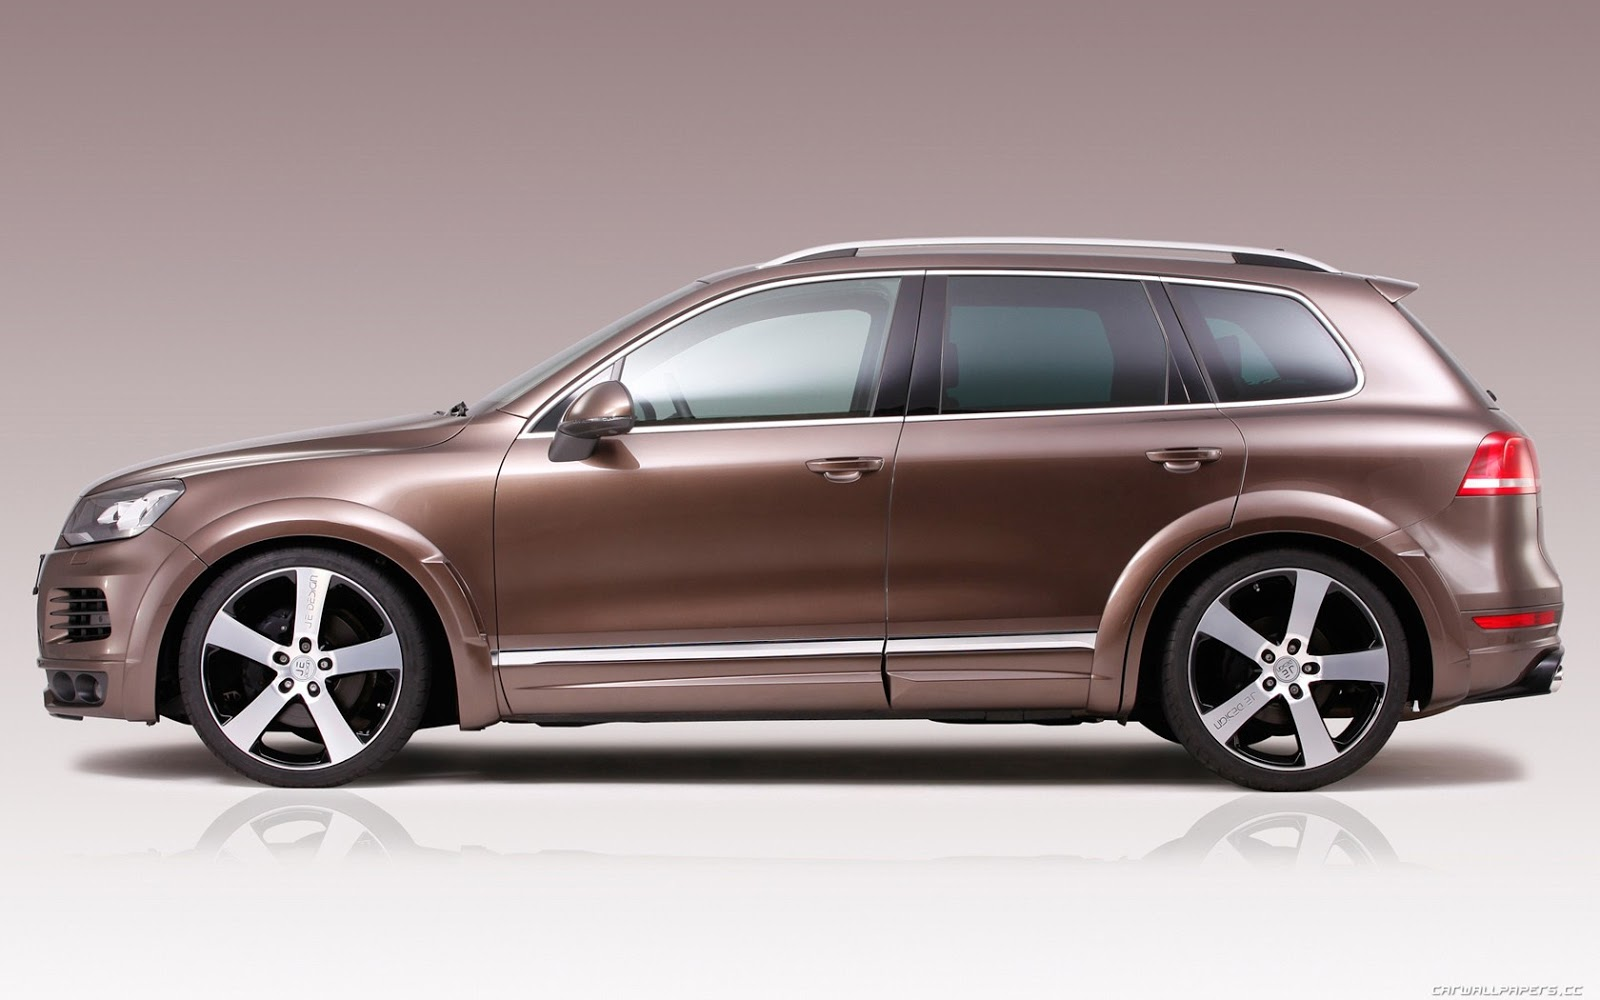 2015 volkswagen touareg cc muscles car wallpaper intersting things of wallpaper cars. Black Bedroom Furniture Sets. Home Design Ideas